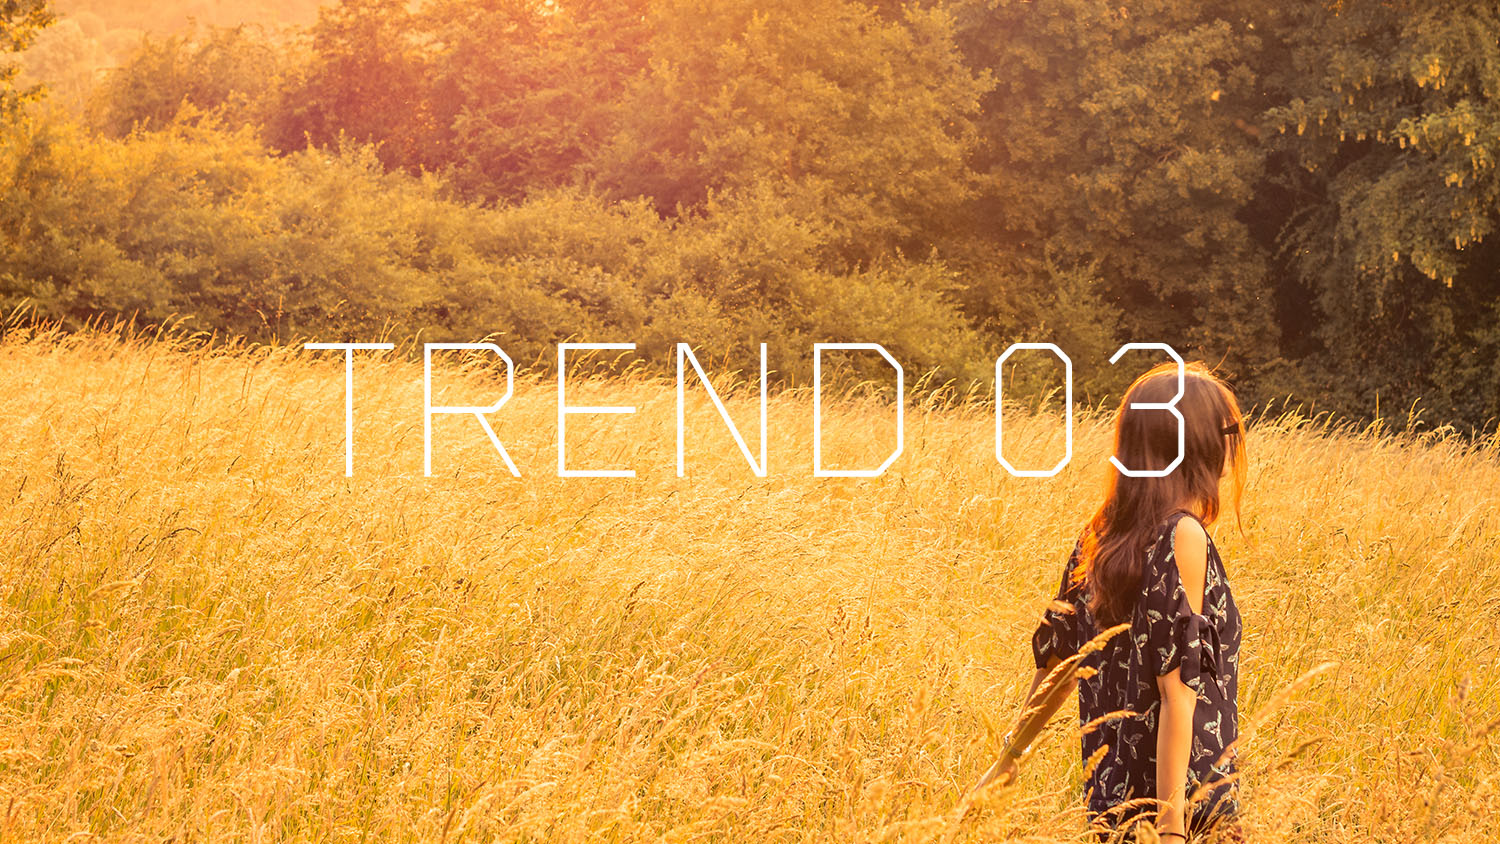 Trendreport 5 digitale Marketing Trends 2020 - 2022, Trend 3